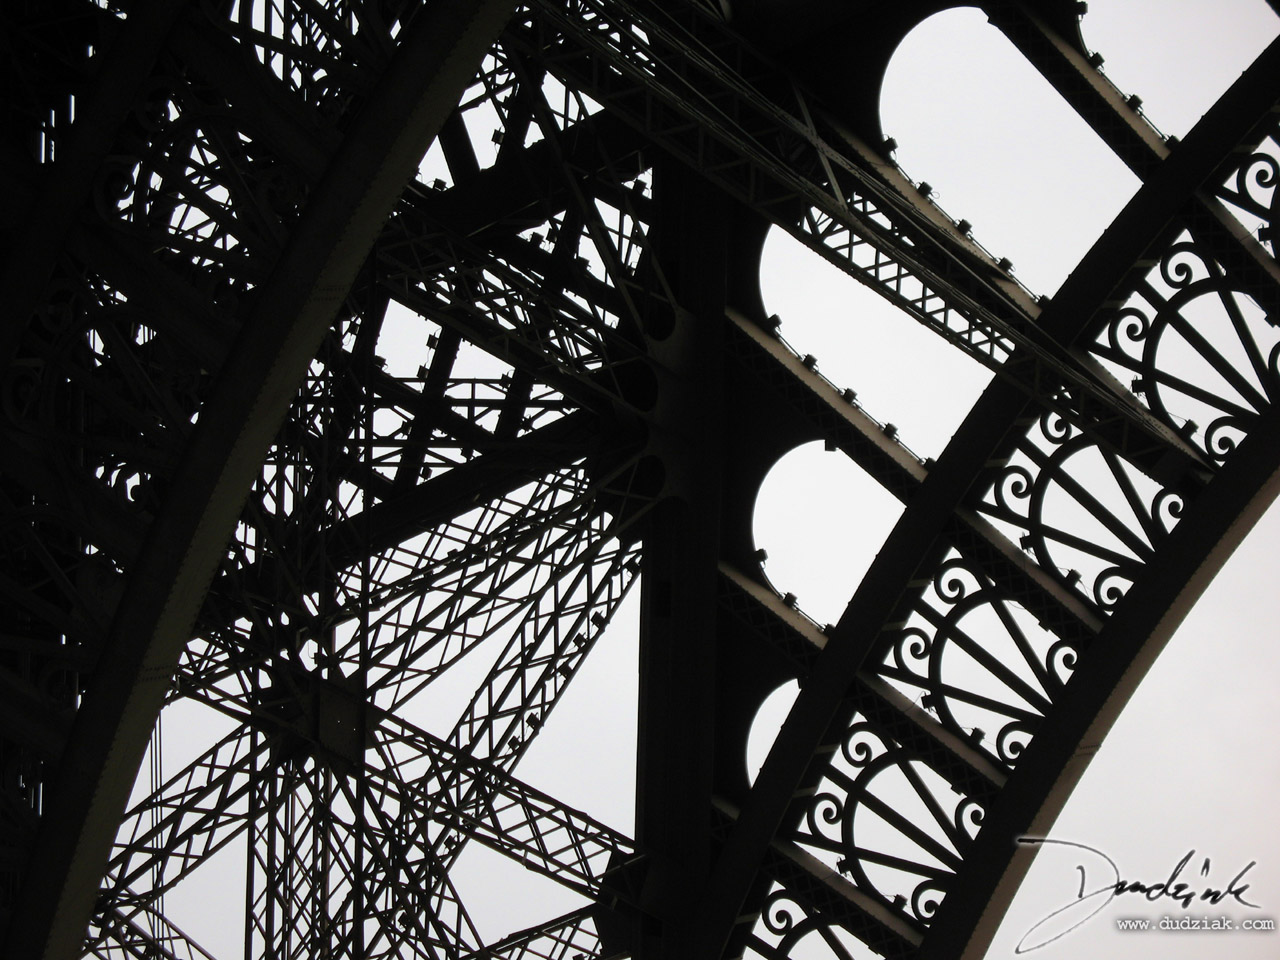 Paris,  Metalwork,  Steel,  Eiffel Tower,  Tour Eiffel